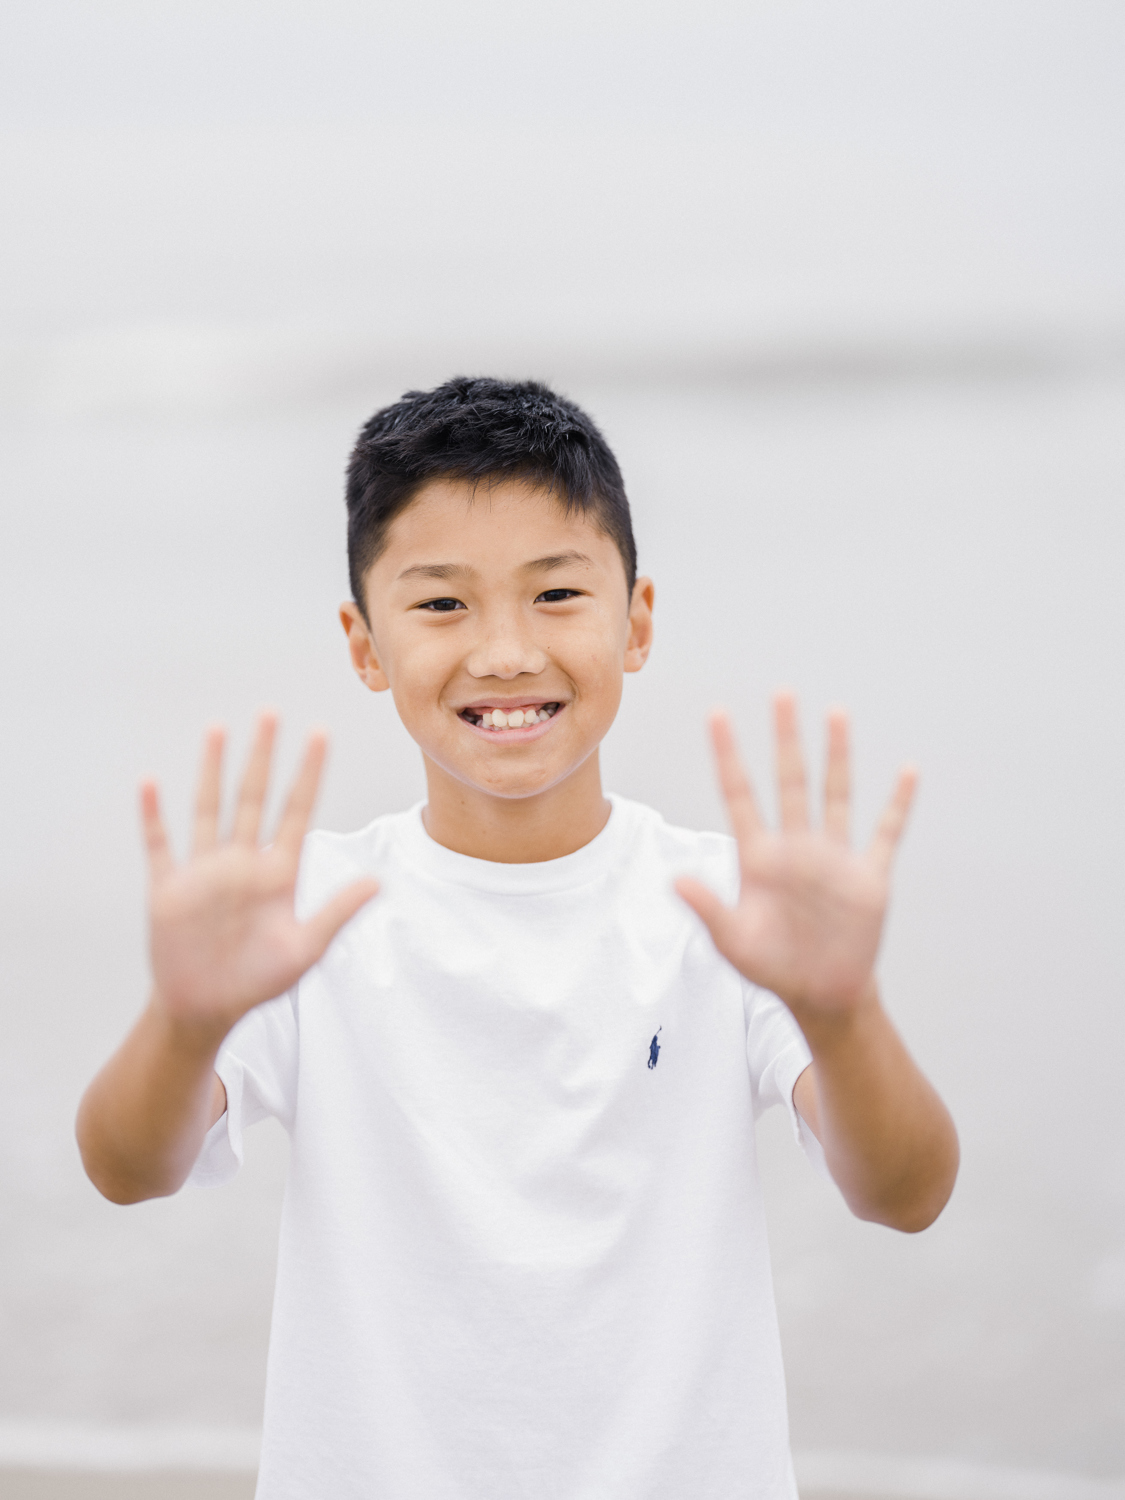 Boy standing on beach holding up 10 fingers